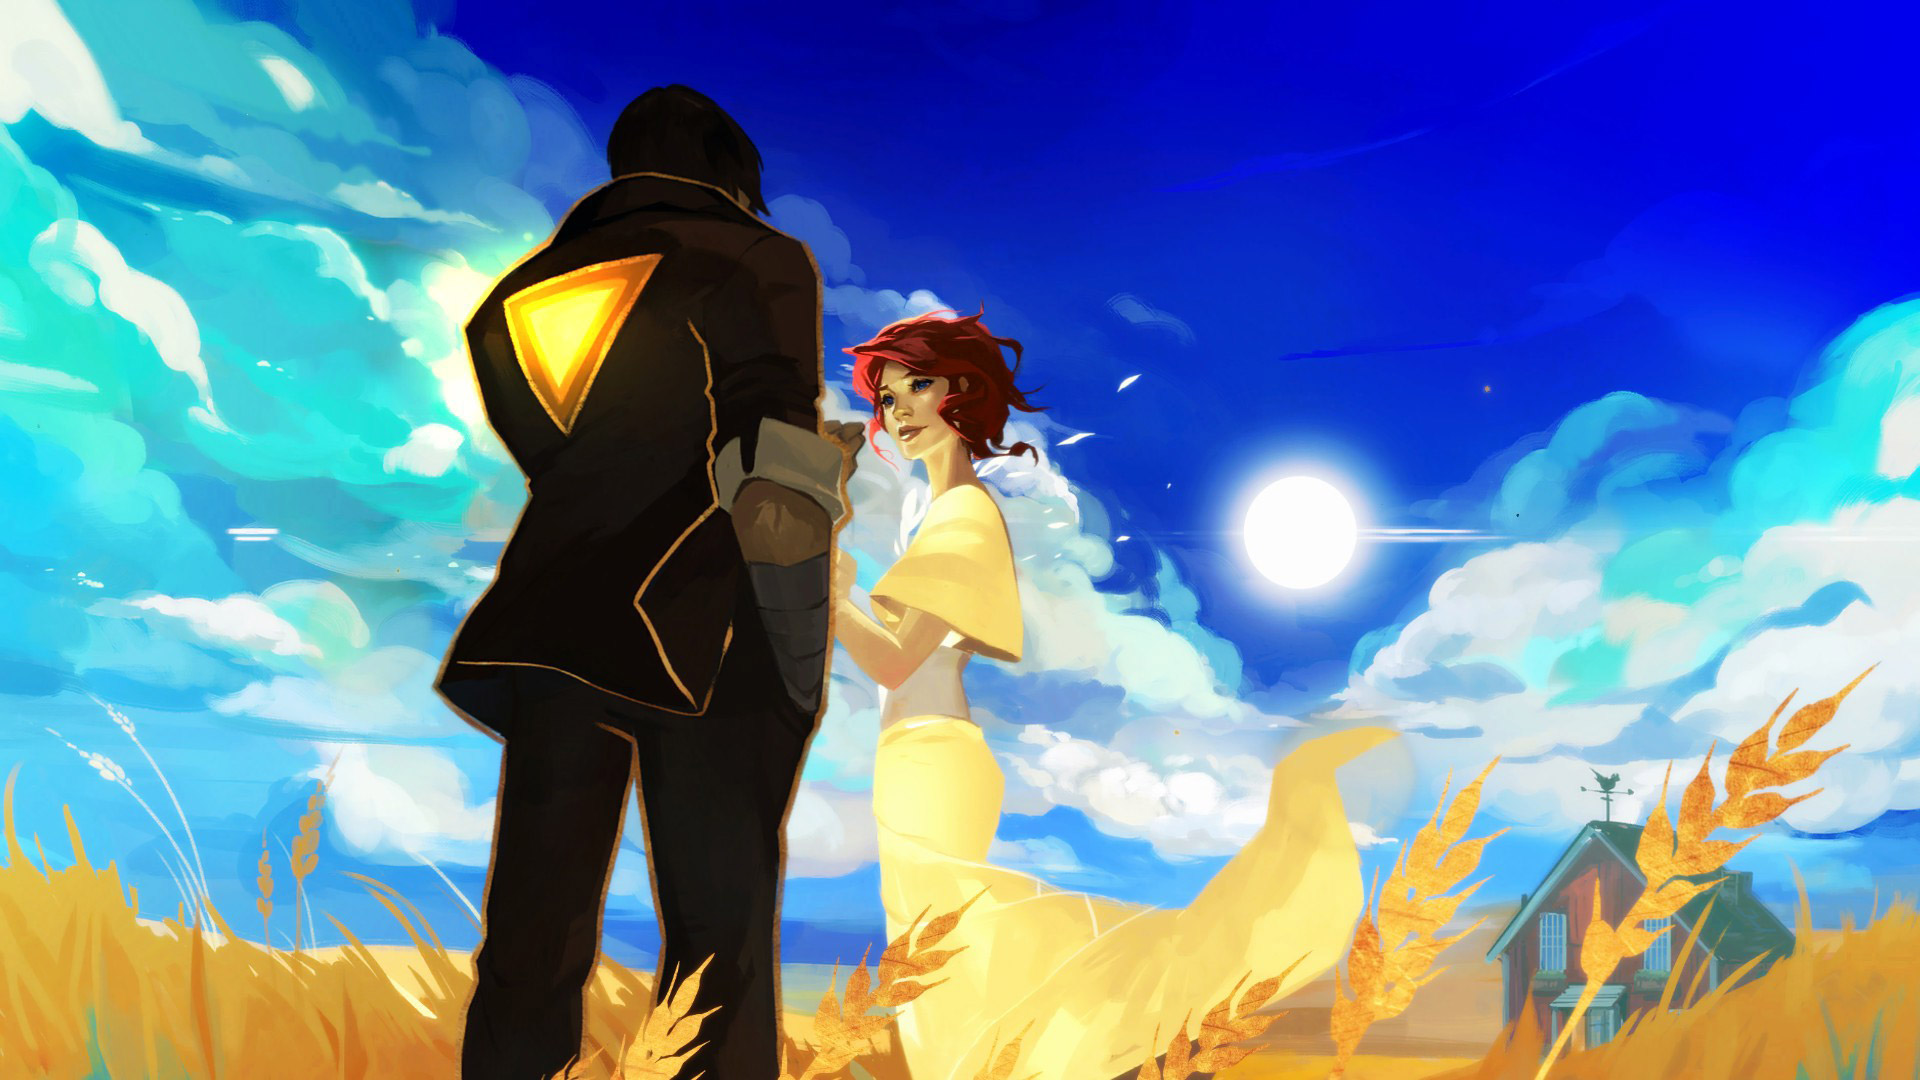 Free Transistor Wallpaper in 1920x1080